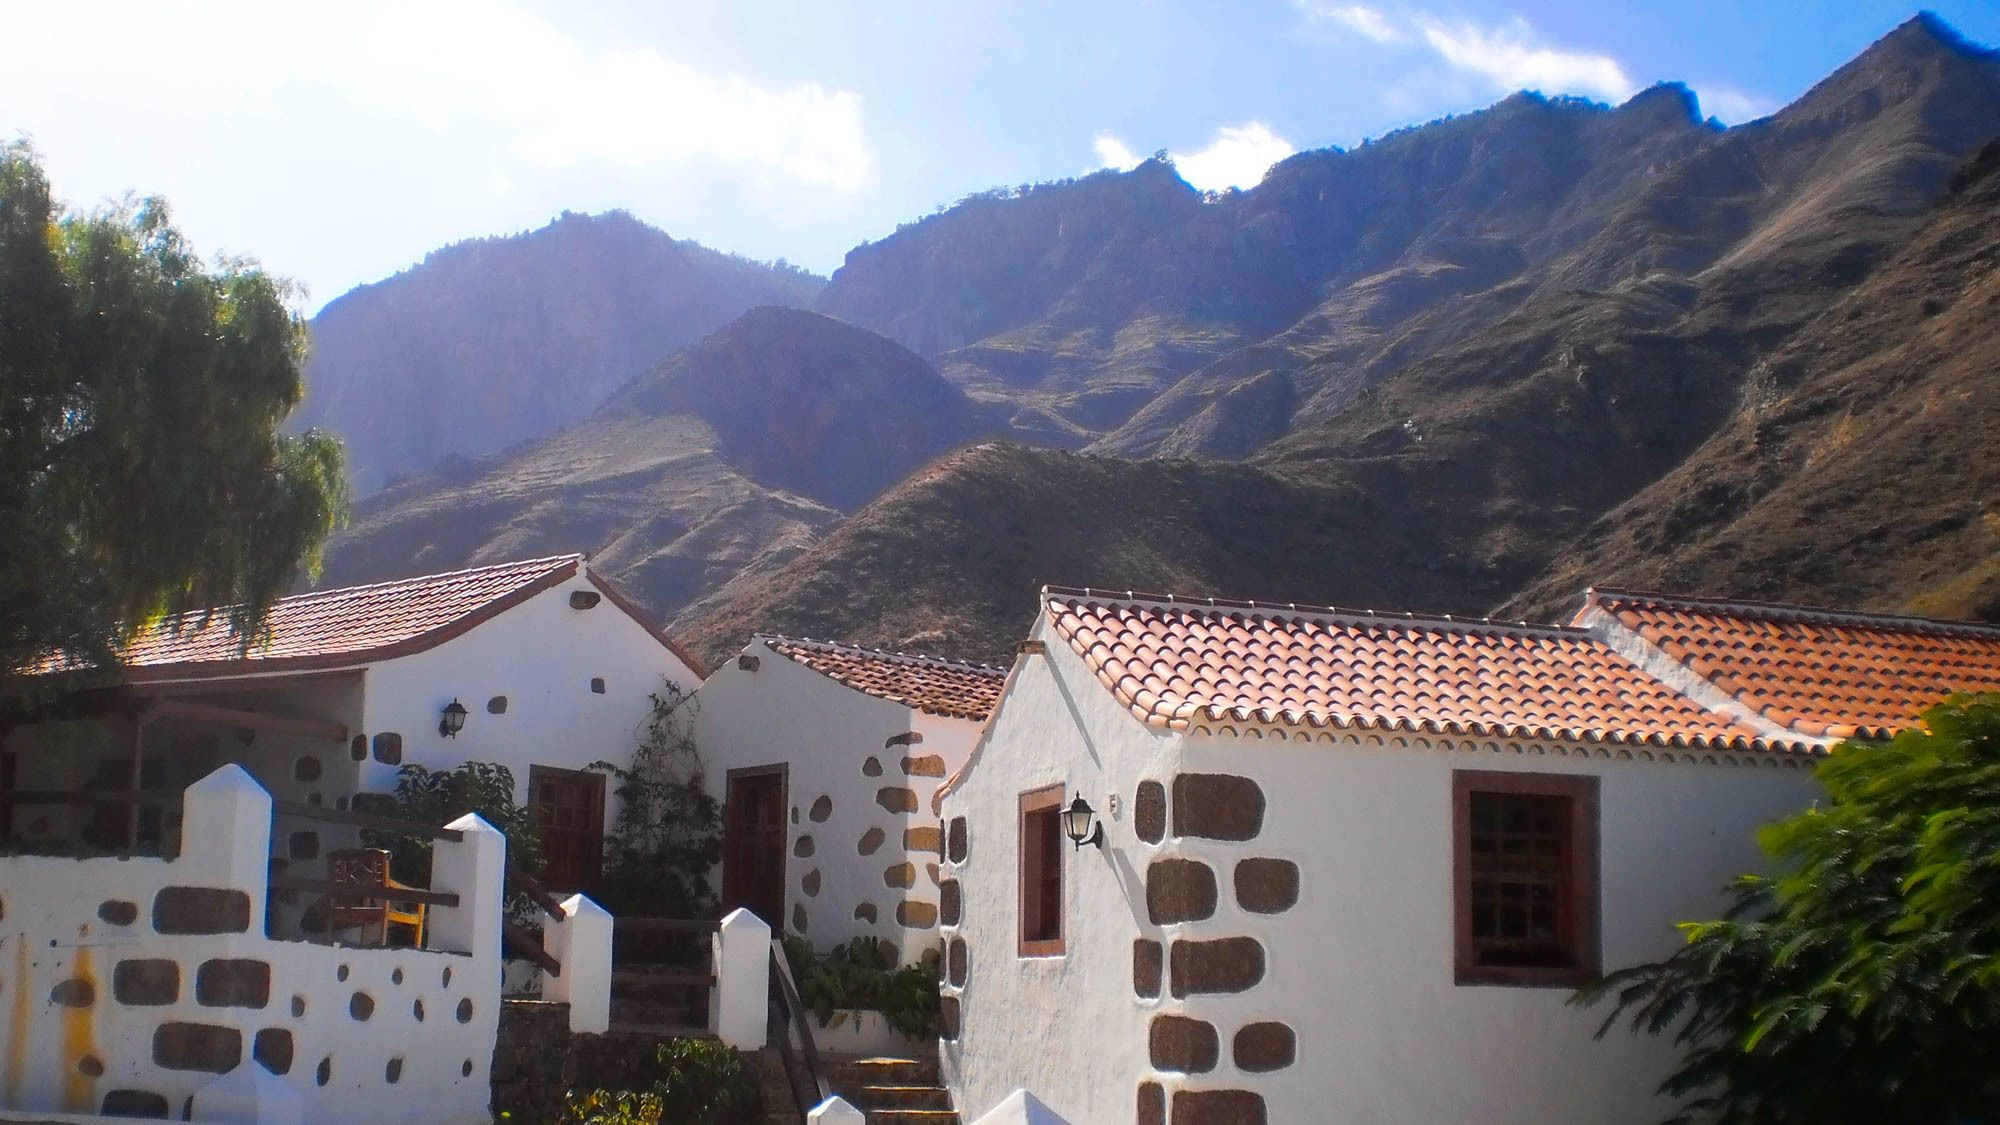 homes at the foot of the mountain in Gran Canaria